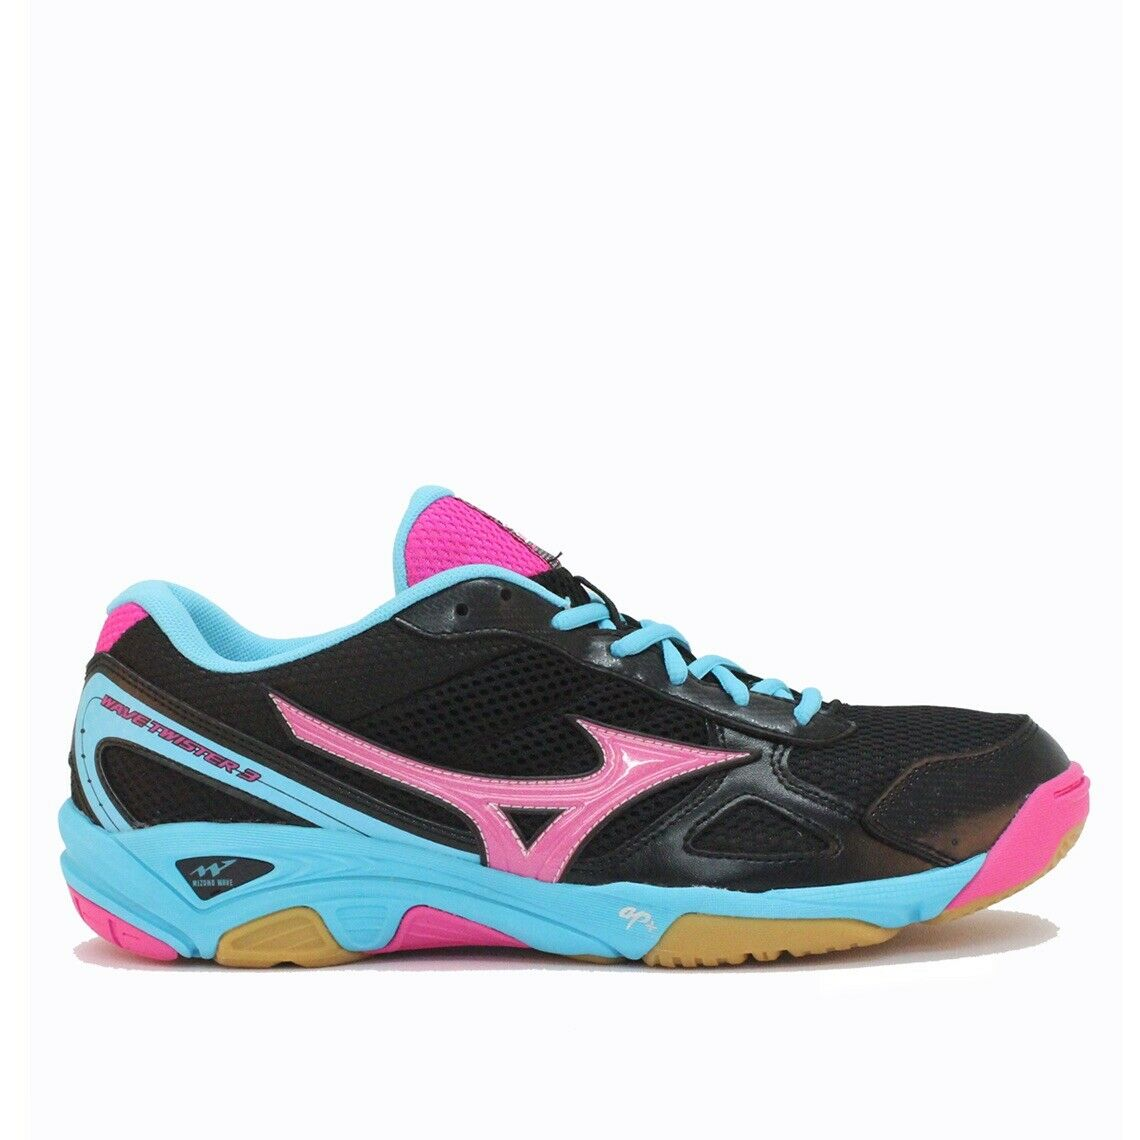 Mizuno V1GA147265 WAVE TWISTER 3 Volleyball Indoor shoes US11.5 Pre-owned